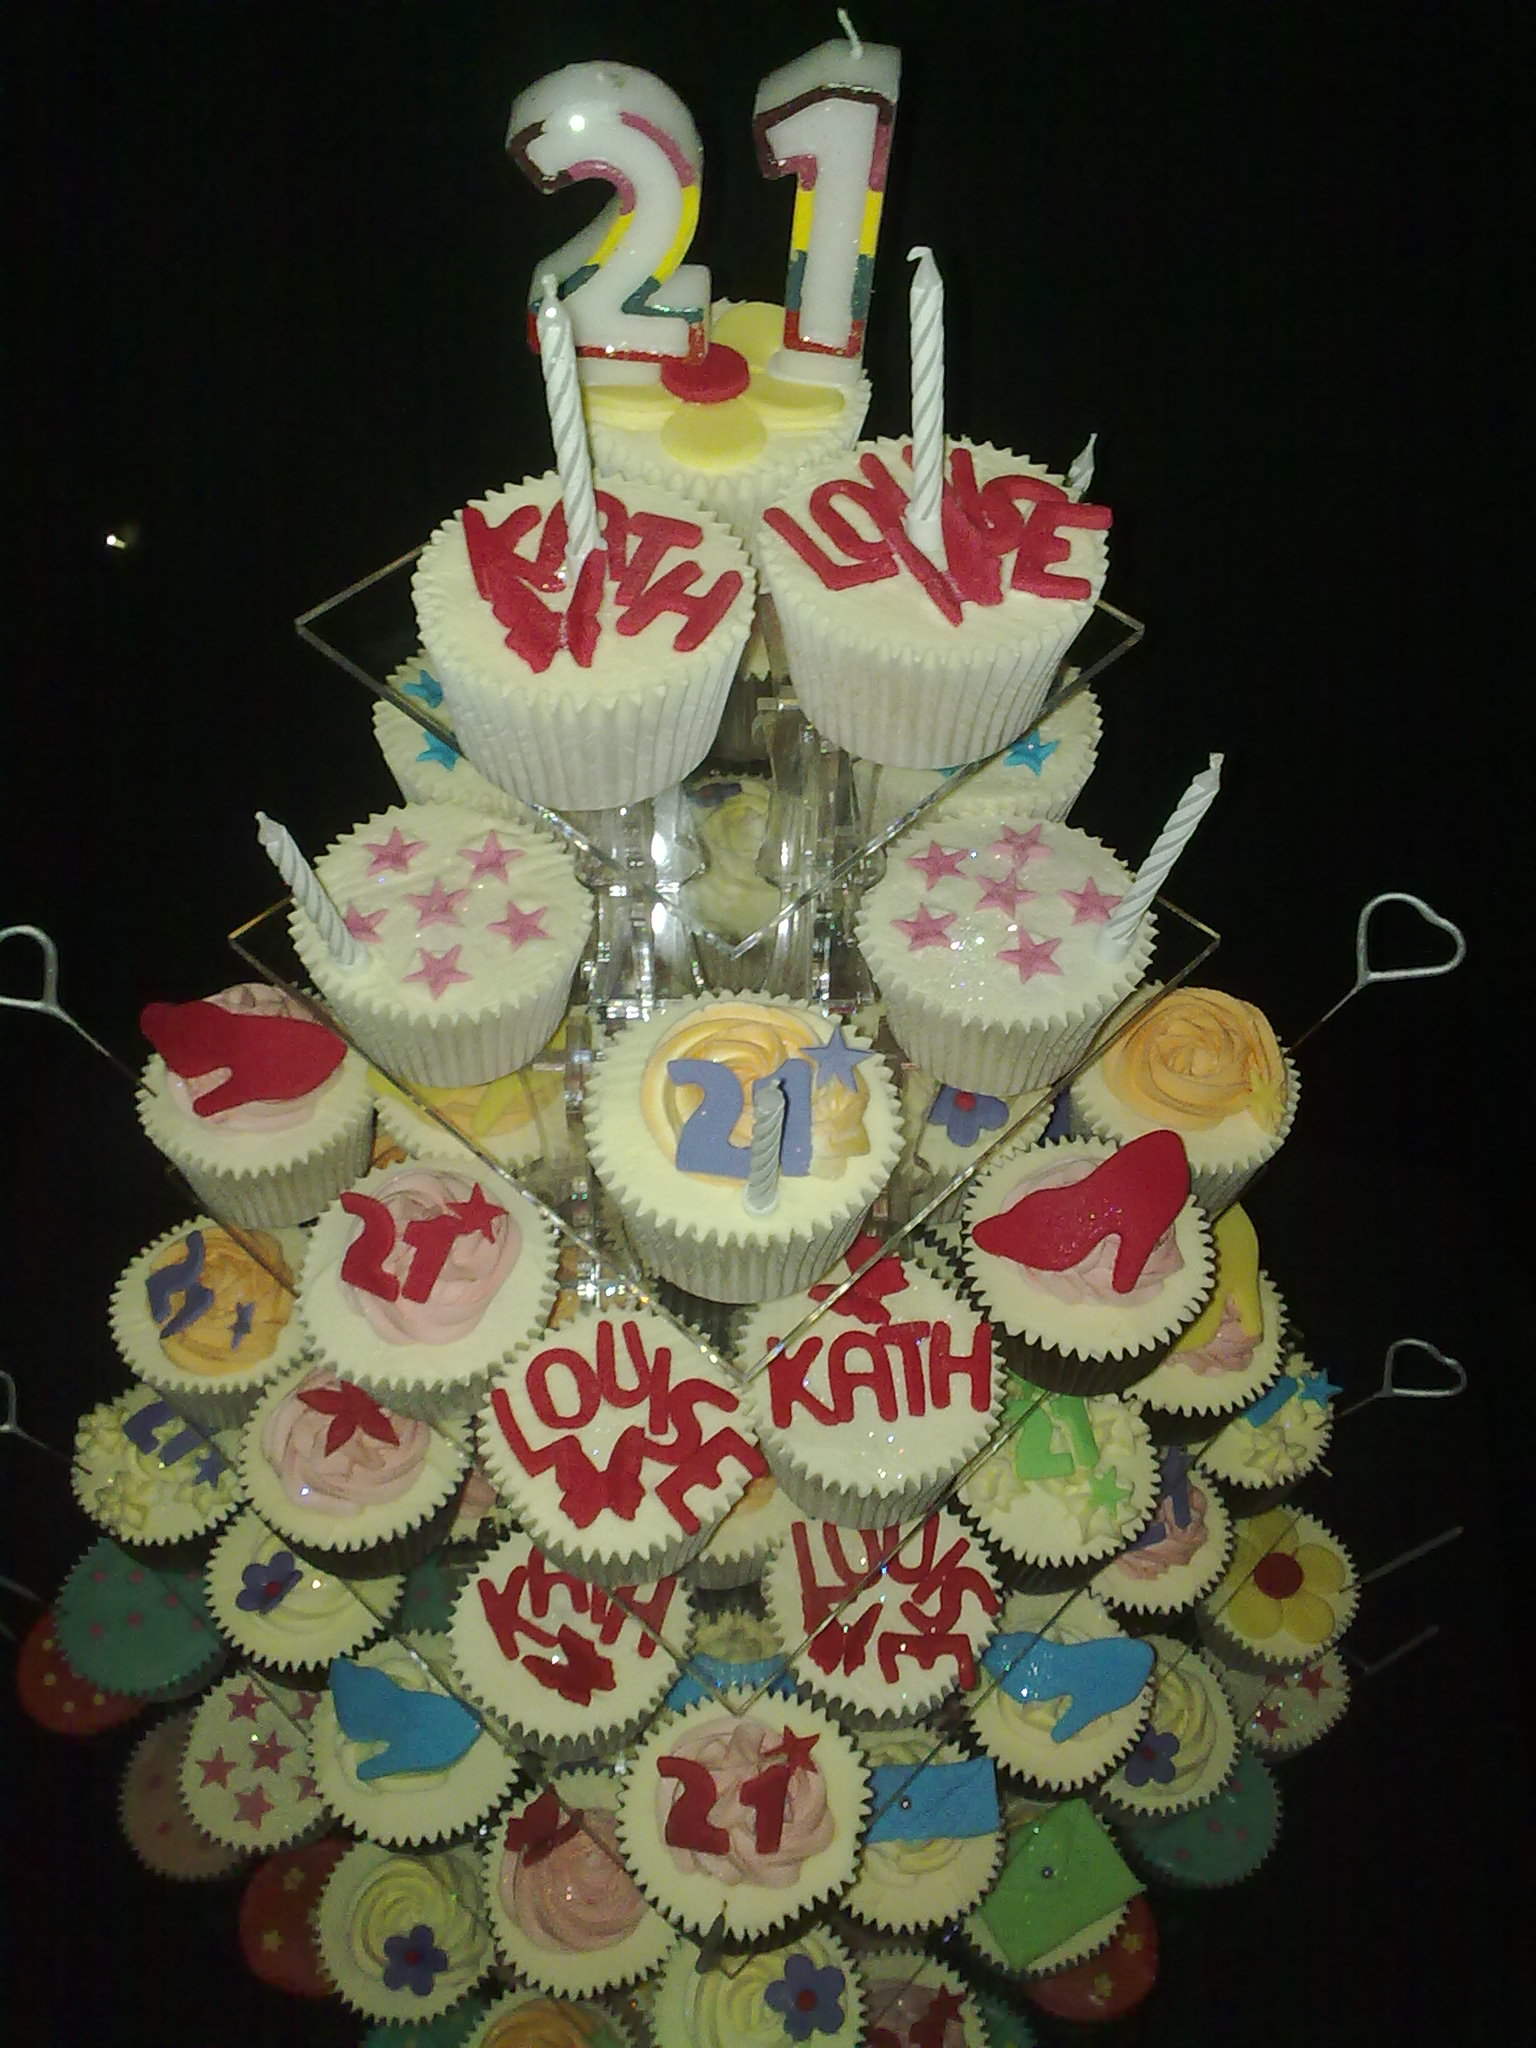 Cupcake tower from above